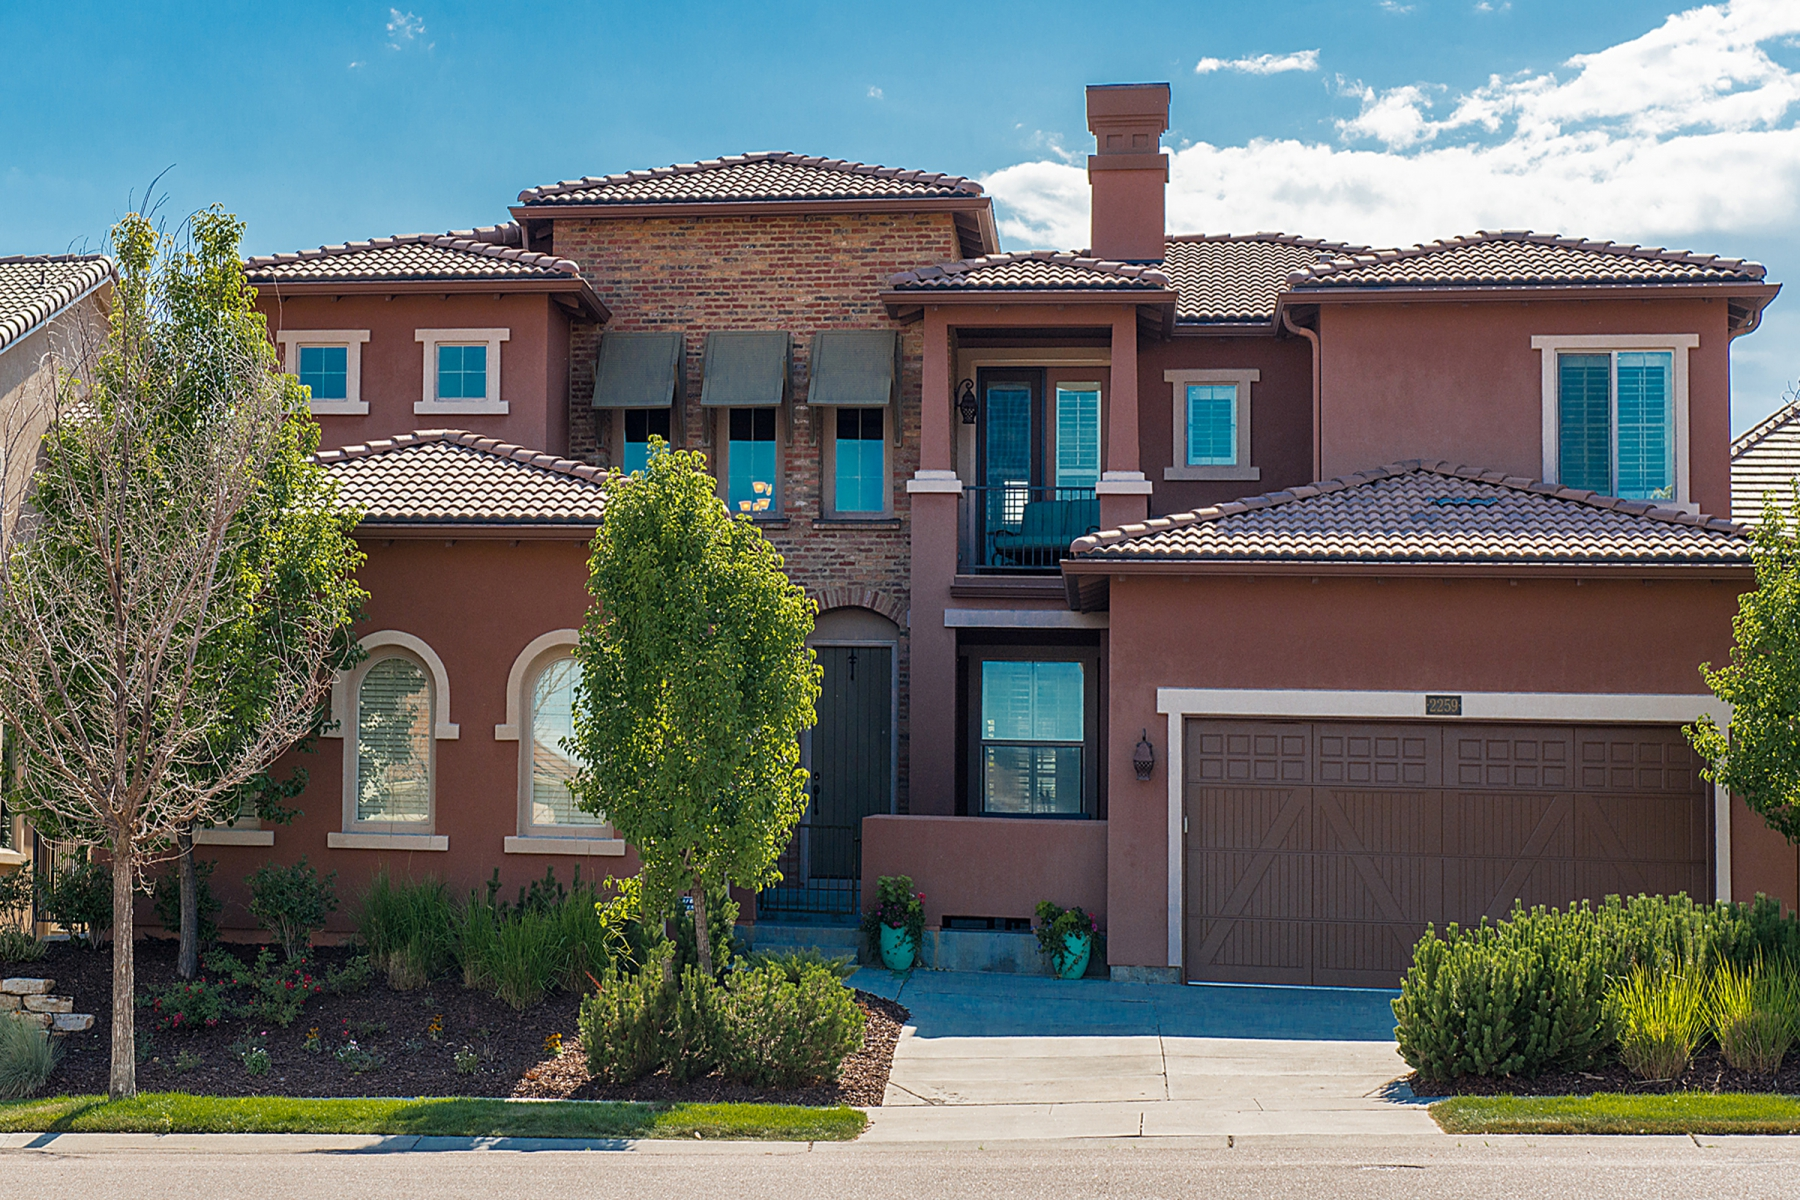 Single Family Home for Sale at Solterra Infinity Home 2259 South Loveland Street Lakewood, Colorado 80228 United States